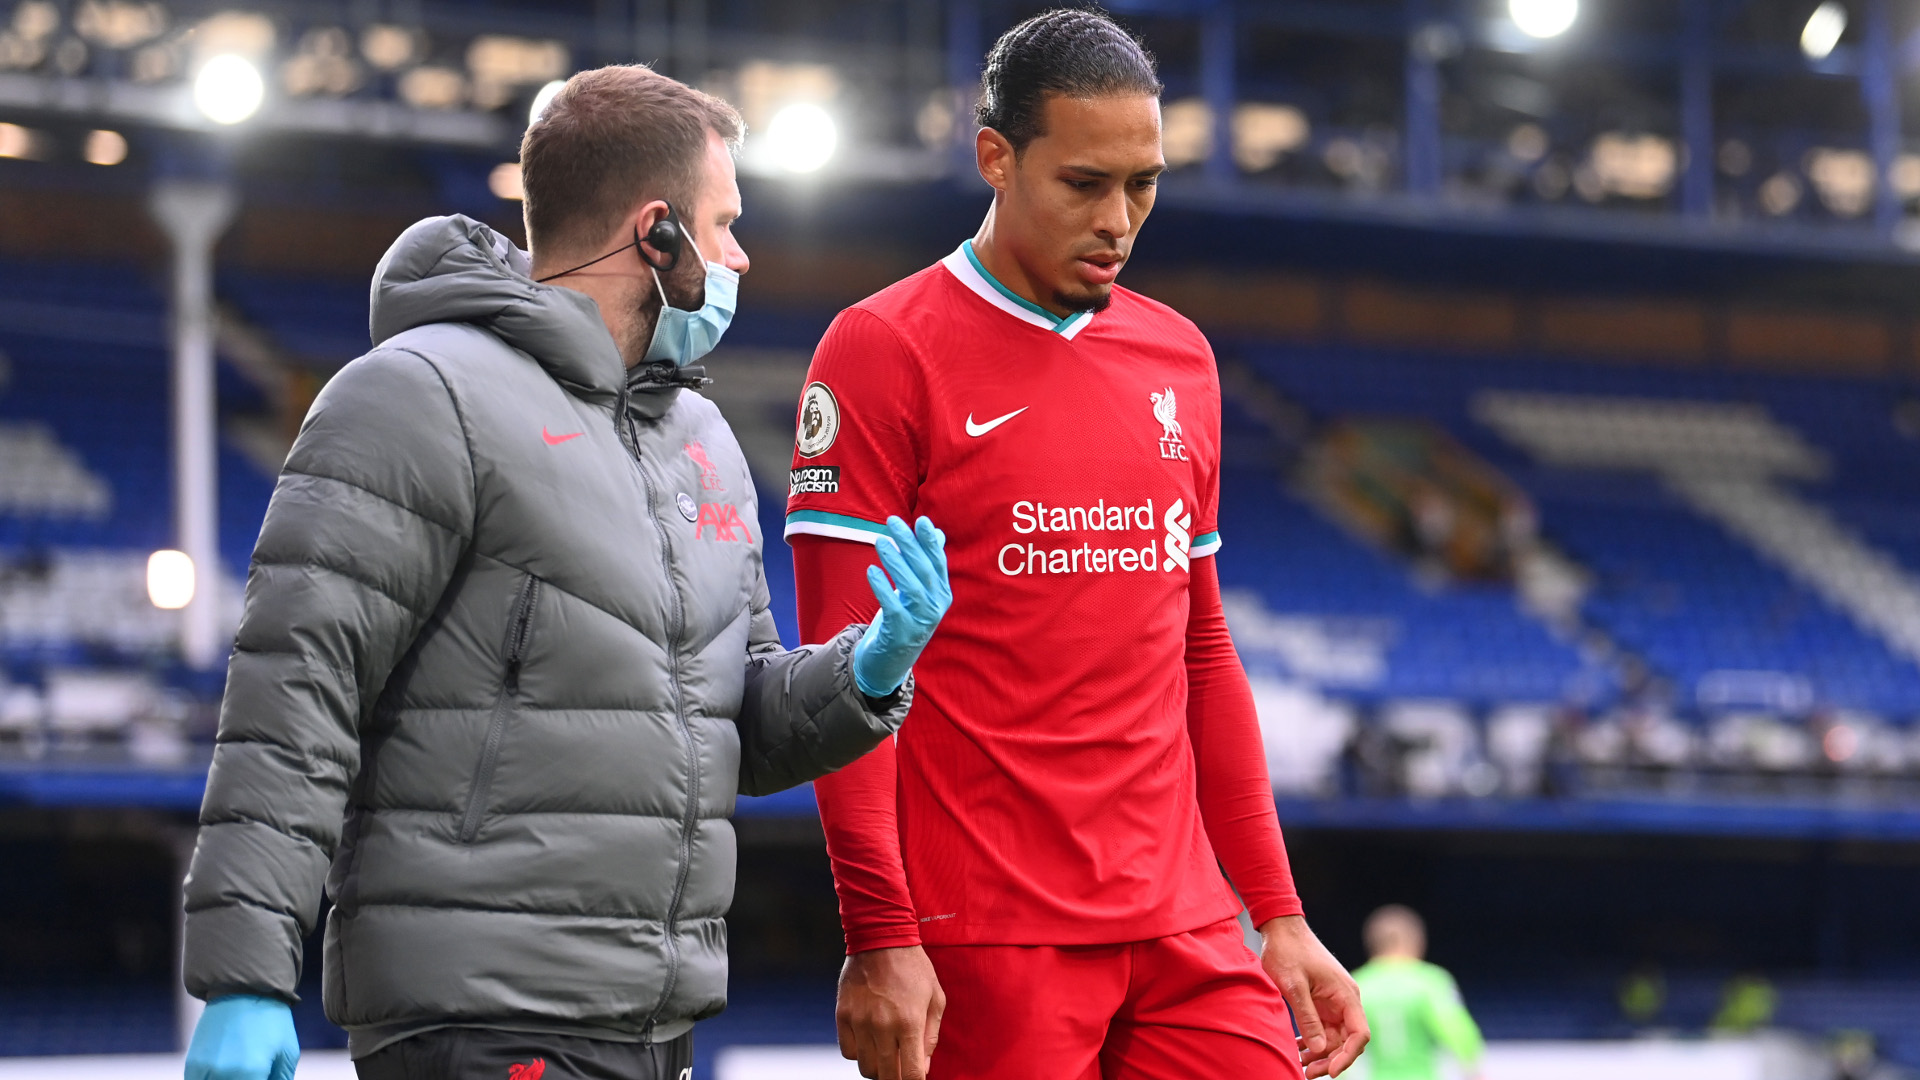 Netherlands will play at Euro 2020 without influential skipper Virgil van Dijk, the Liverpool defender confirming he will not go.